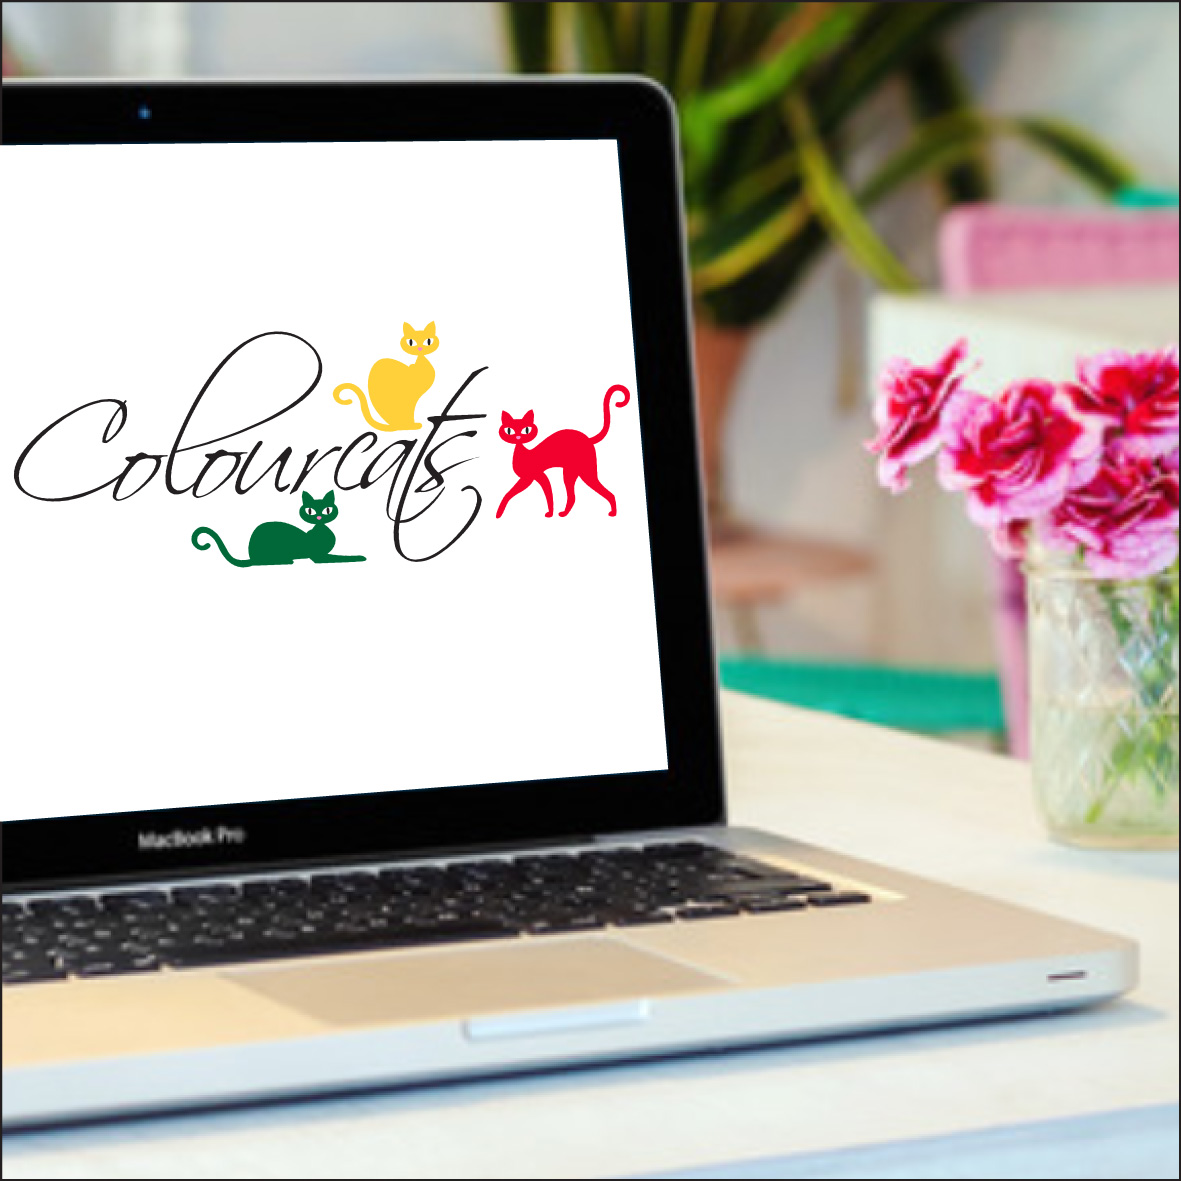 Startseite colourcats Blog